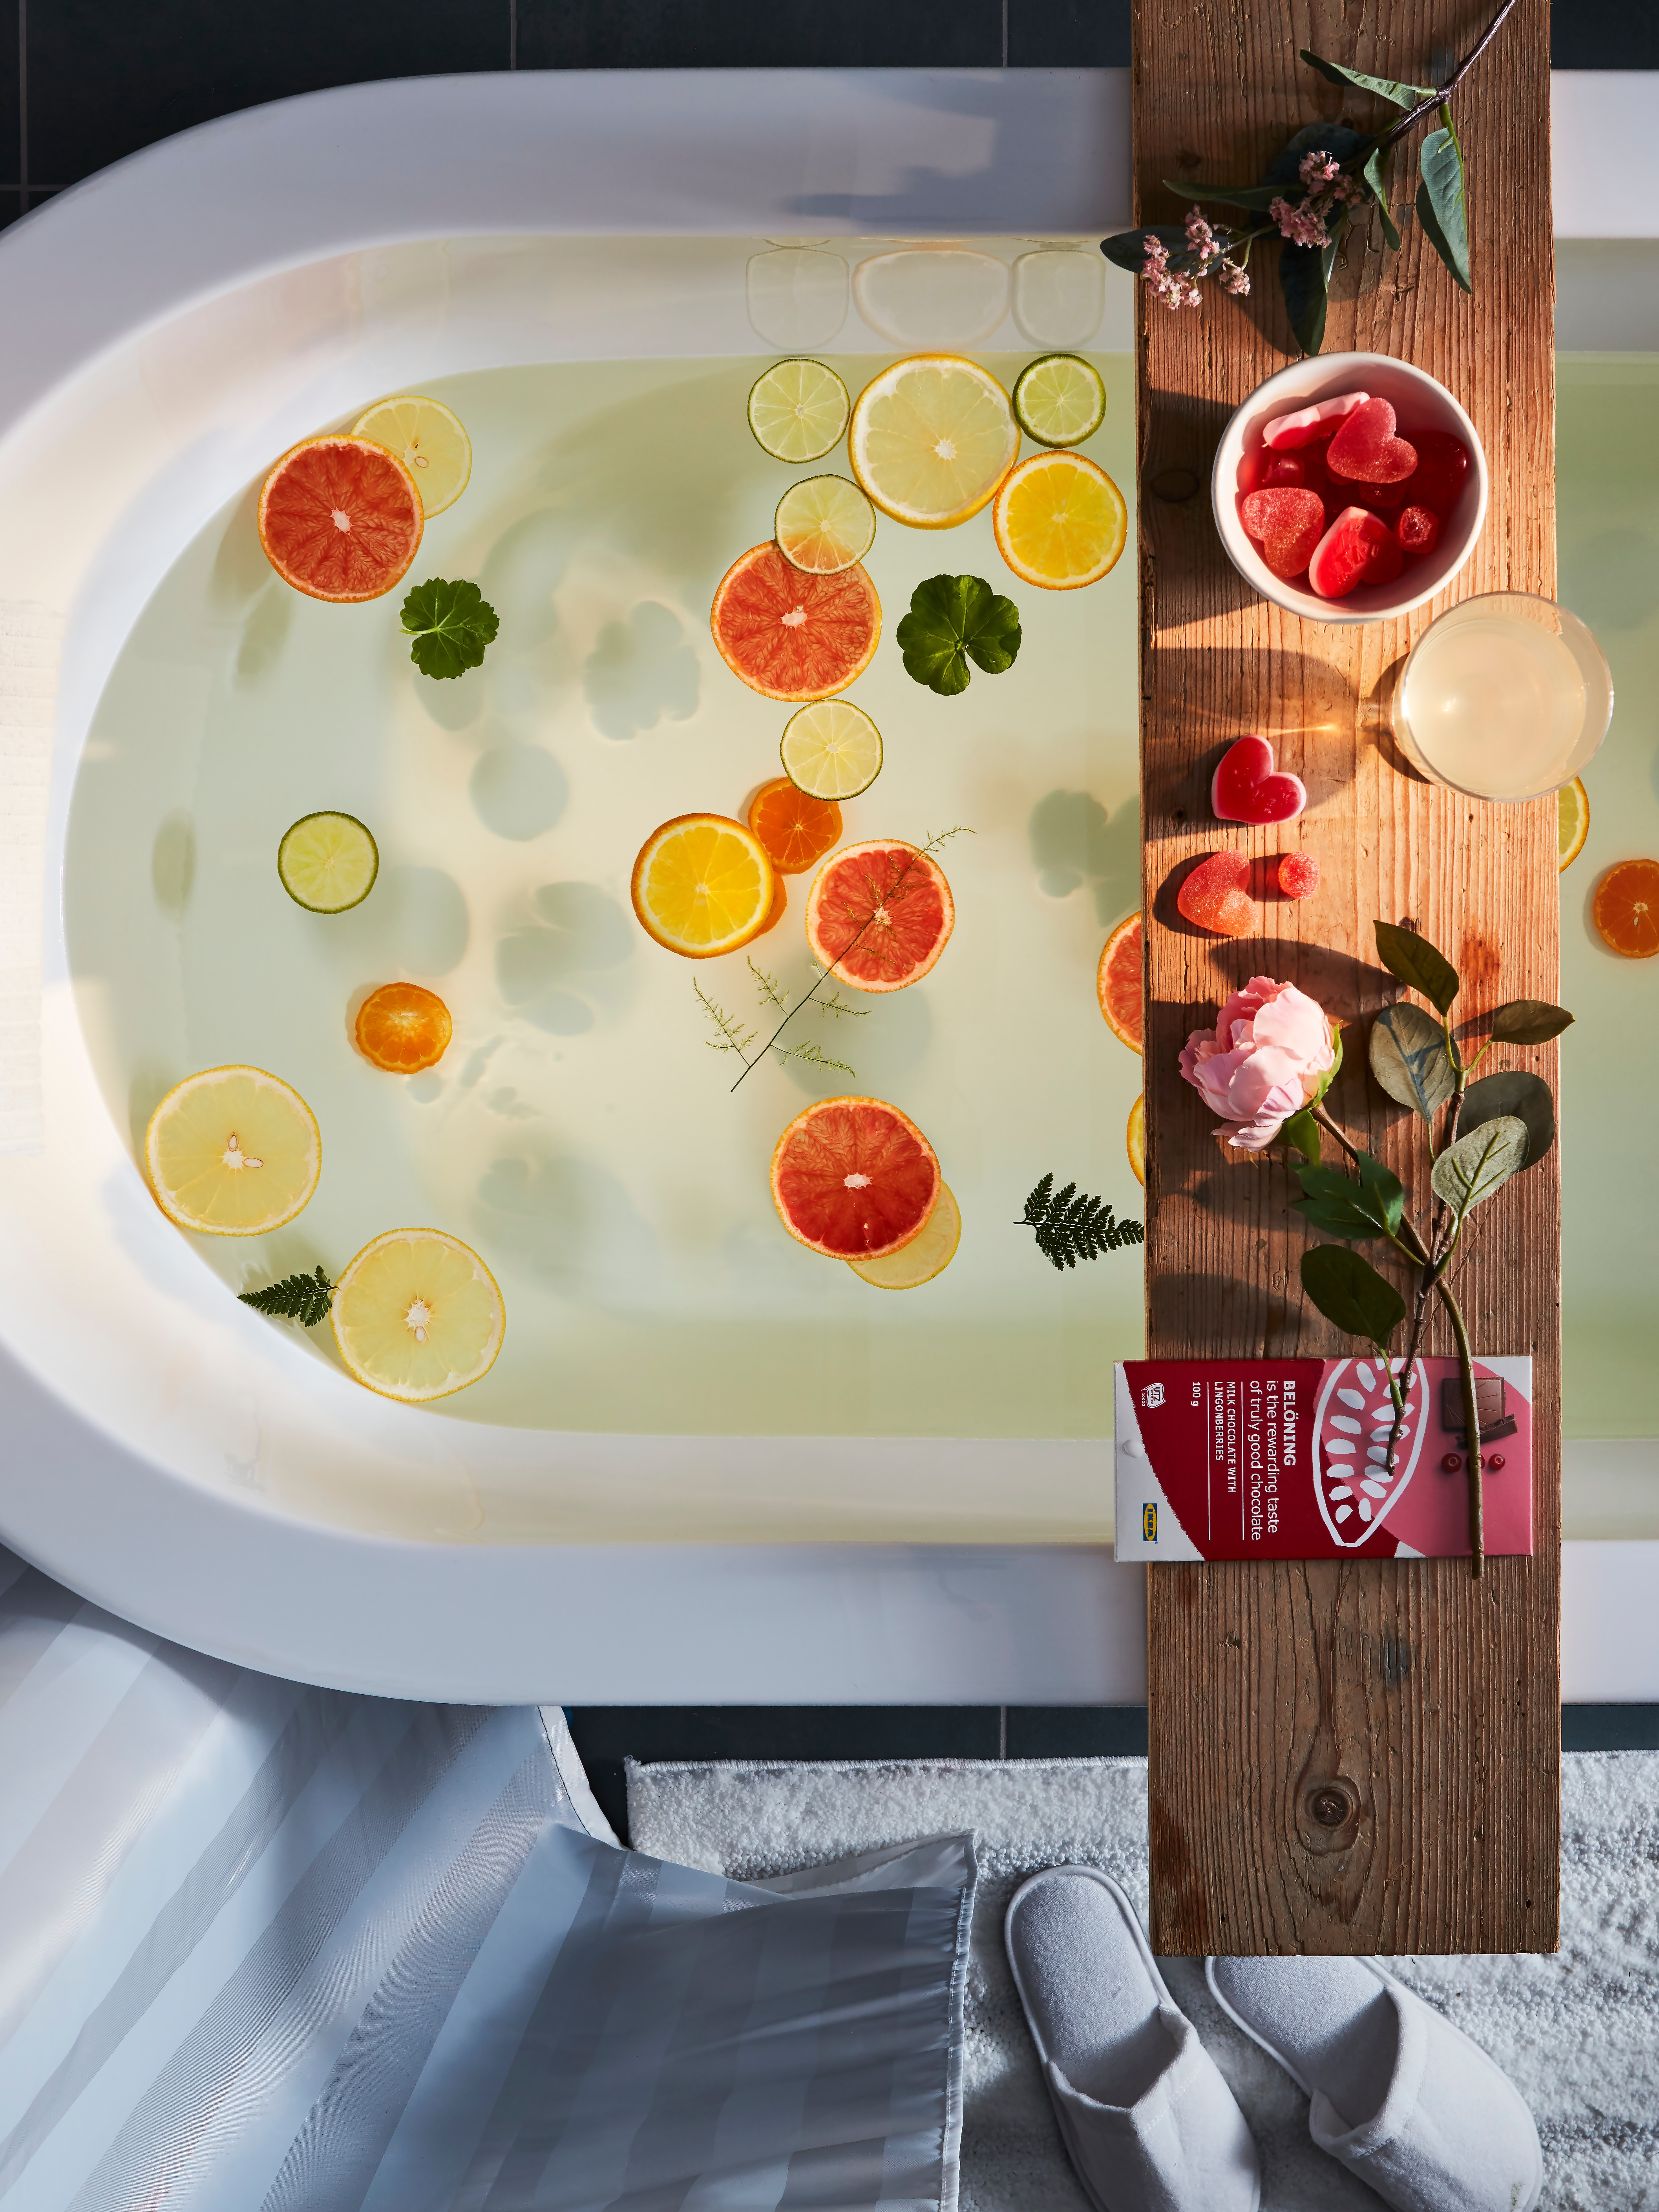 An aerial view of a filled bathtub that has a shelf across it, holding a BELÖNING milk chocolate tablet with lingonberries.